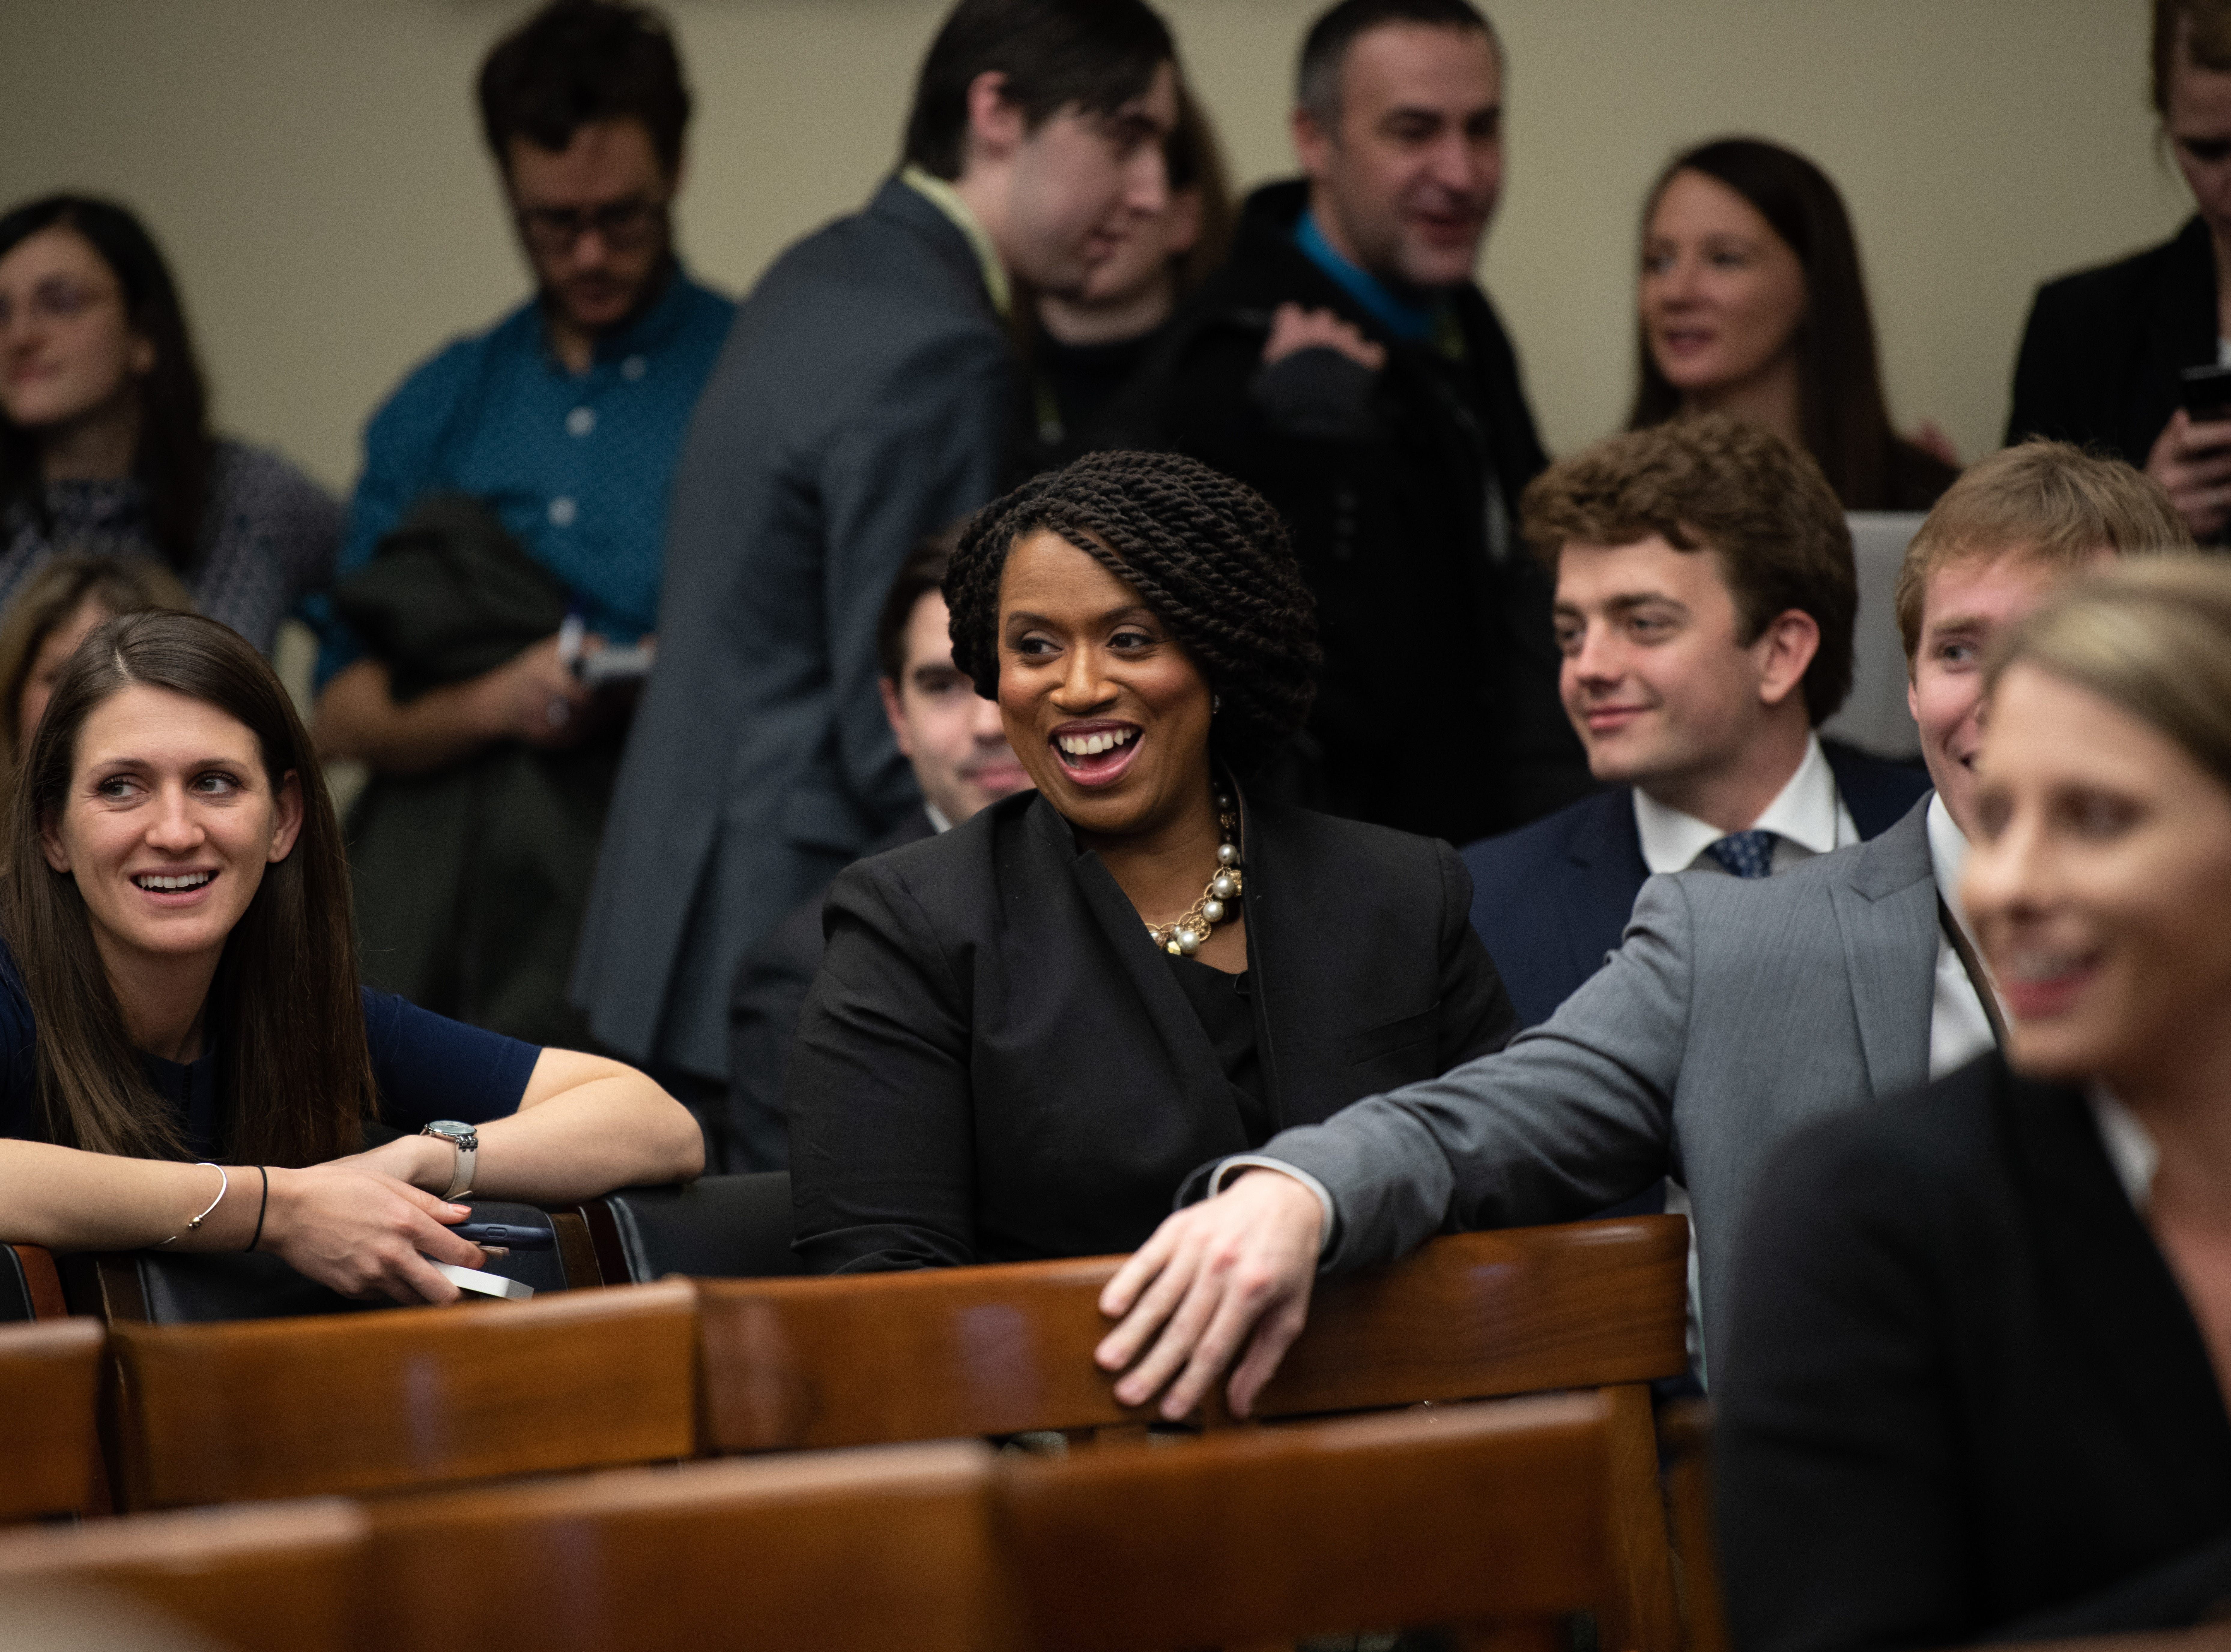 {Nov. 30, 2018} {10:30 a.m.} -- Washington, DC  -- Newly-elected Congresswoman Ayanna Pressley of Massachusetts (D) sits with colleagues while awaiting the start of the lottery that determines the order in which new members of Congress will select their offices. -- Photo by Hannah Gaber, USA TODAY Staff